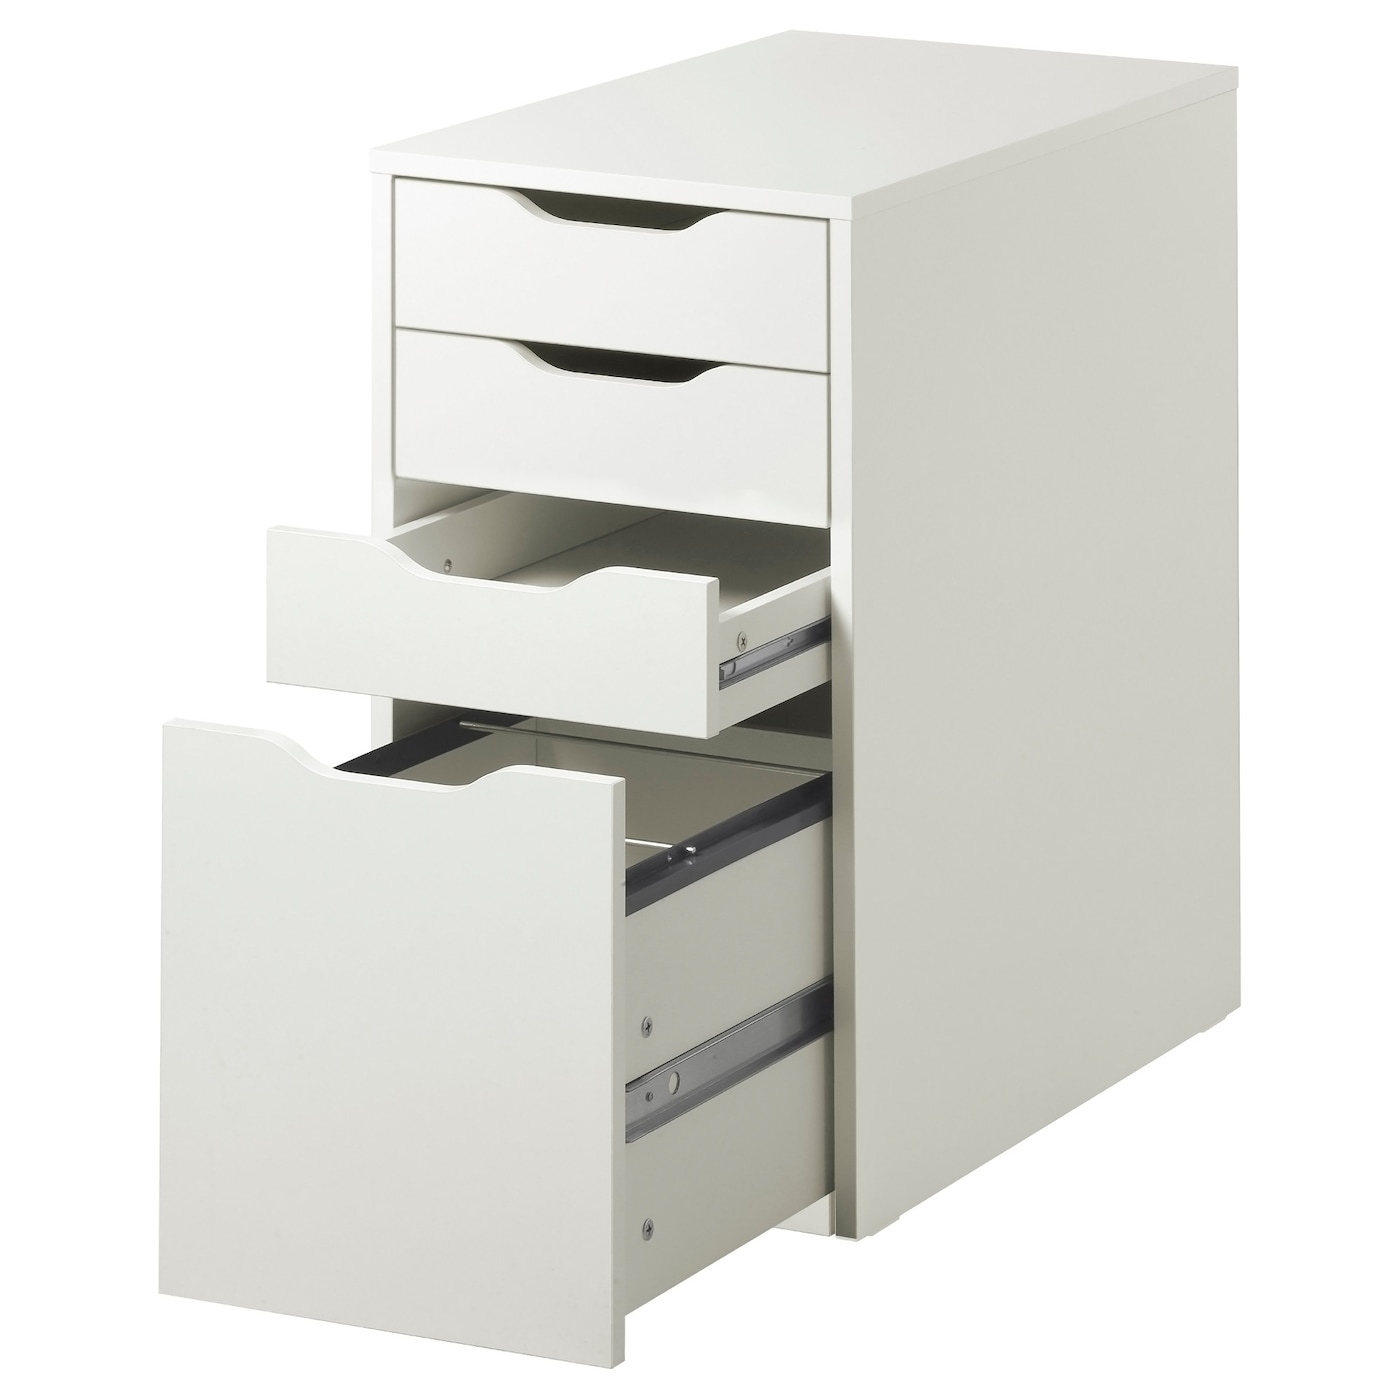 Alex Drawer Unit Drop File Storage White 14 1 8x27 1 2 Ikea